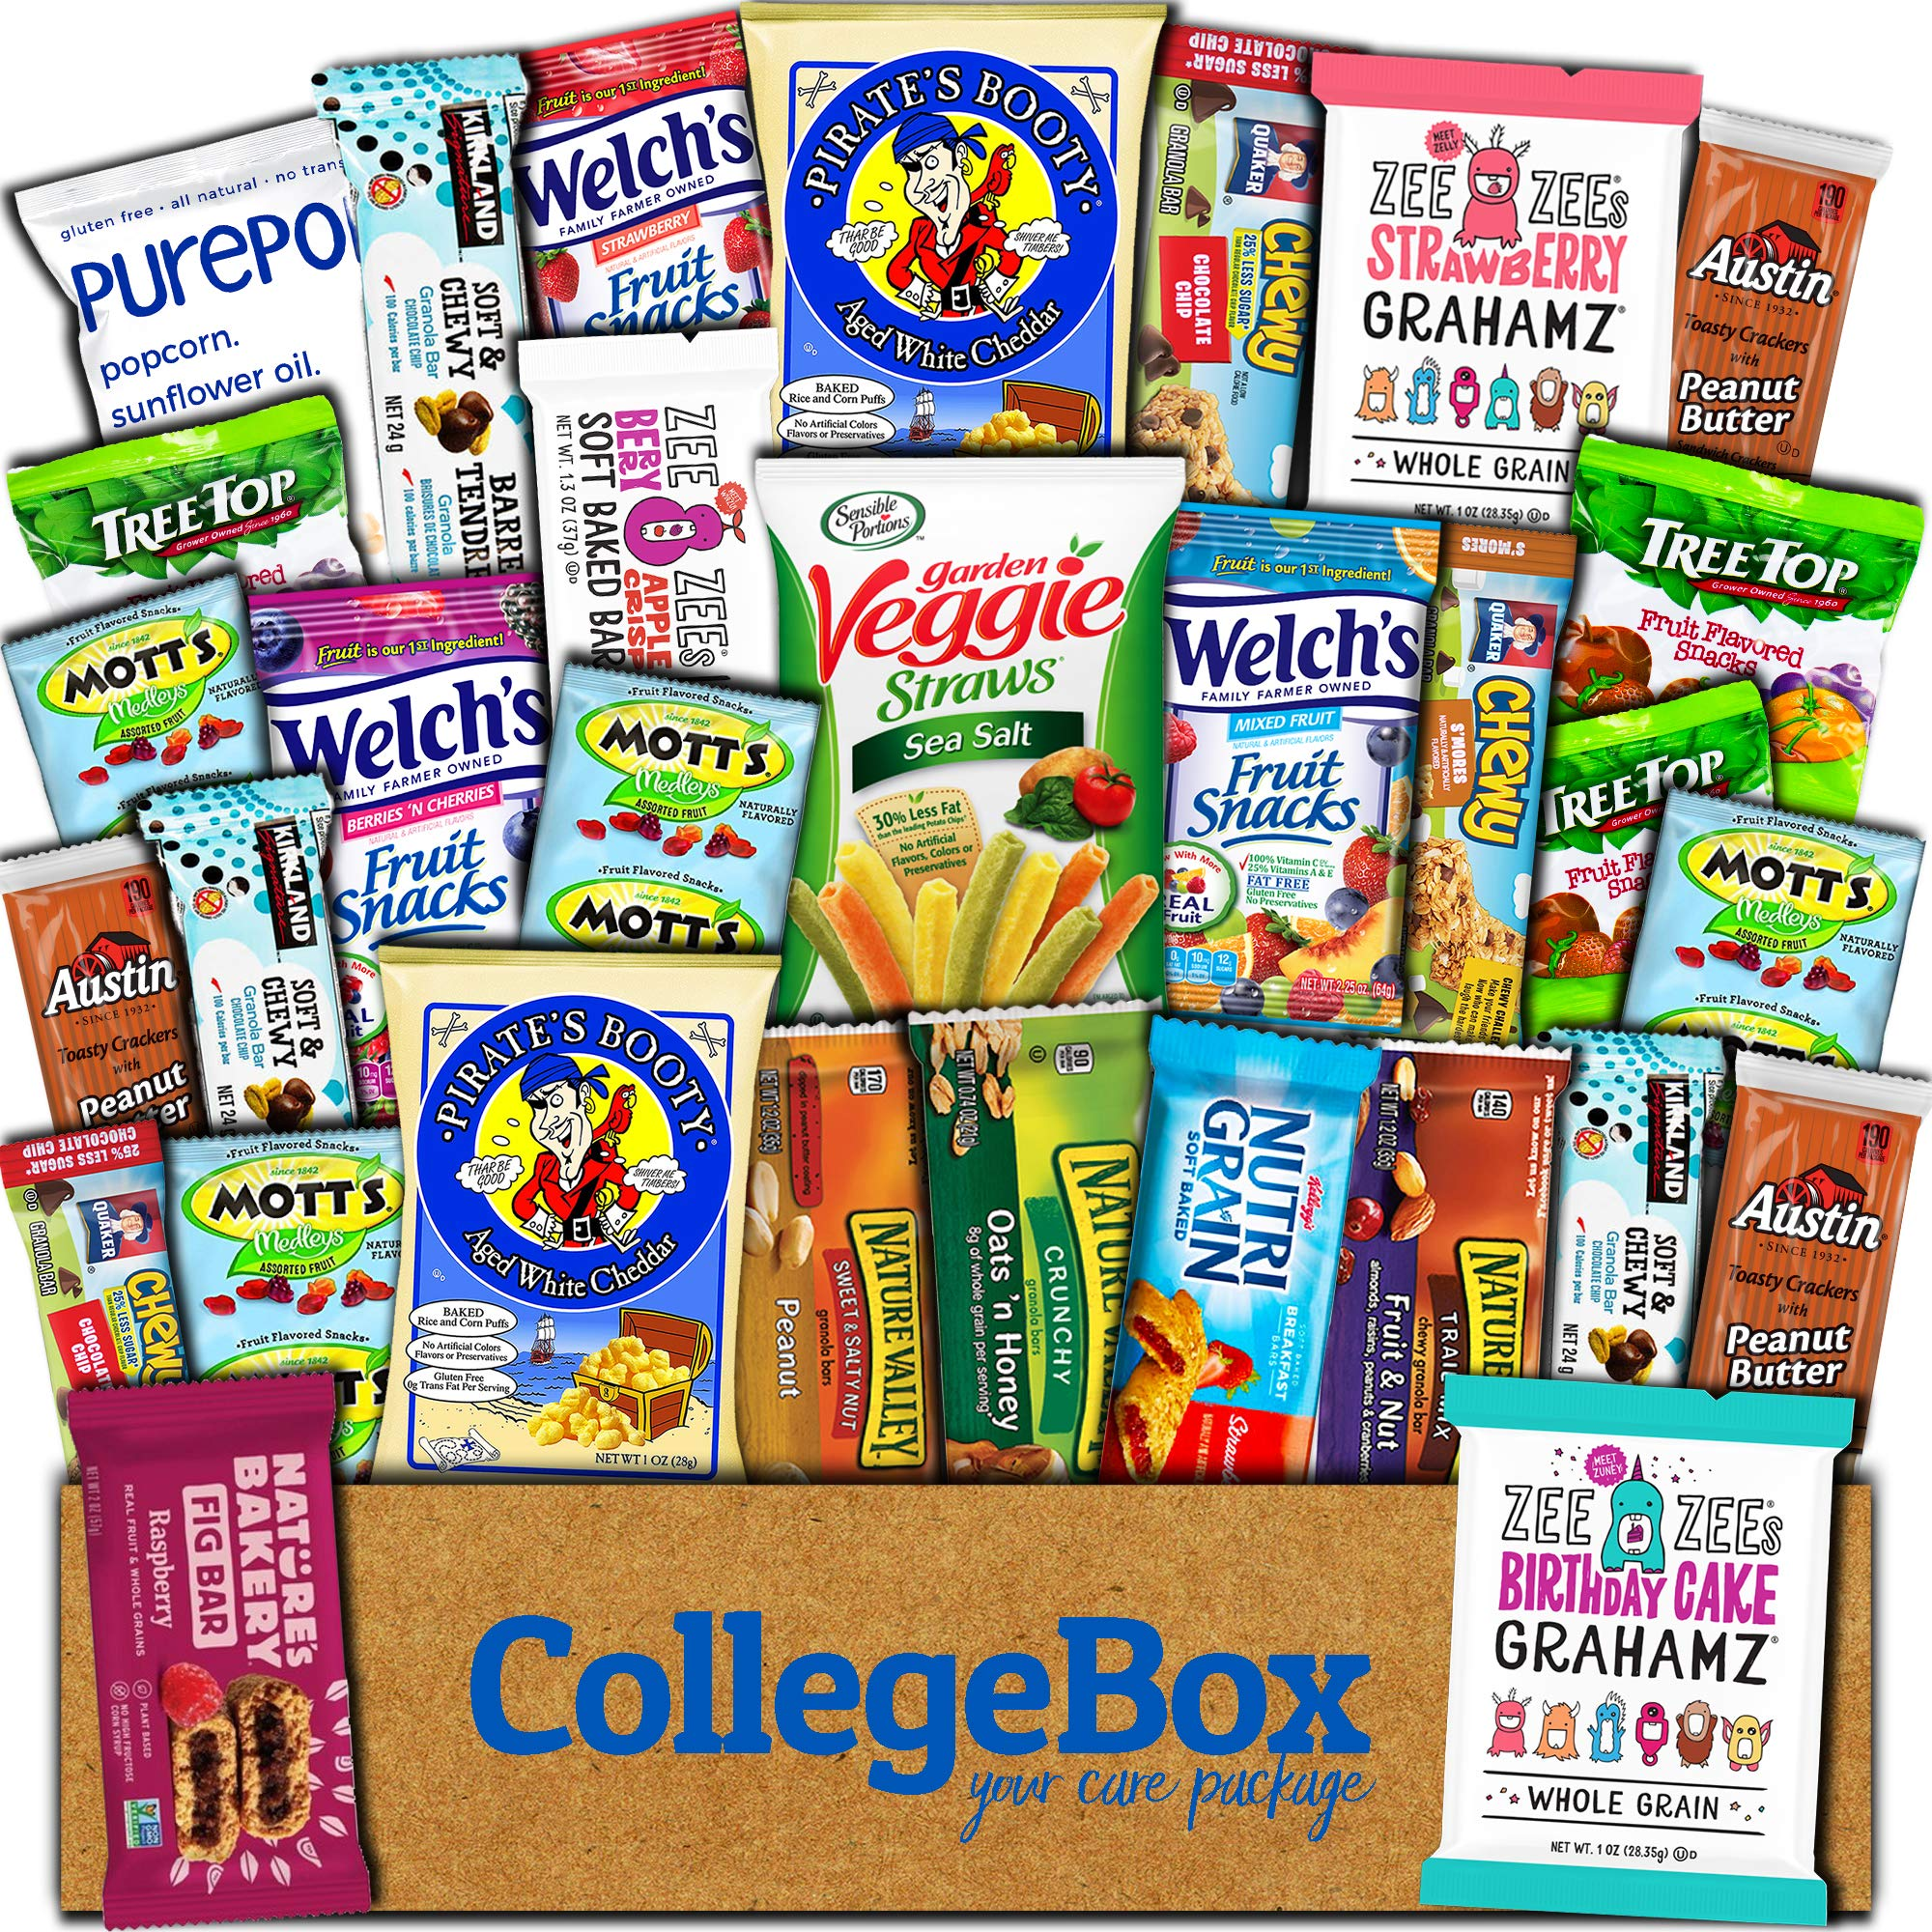 College Box Healthy Care Package (30 Count) Natural Bars Nuts Fruit Health Nutritious Snacks Variety Gift Box Pack Assortment Basket Bundle Mix Sample College Student Office Fall Back School Halloween by CollegeBox